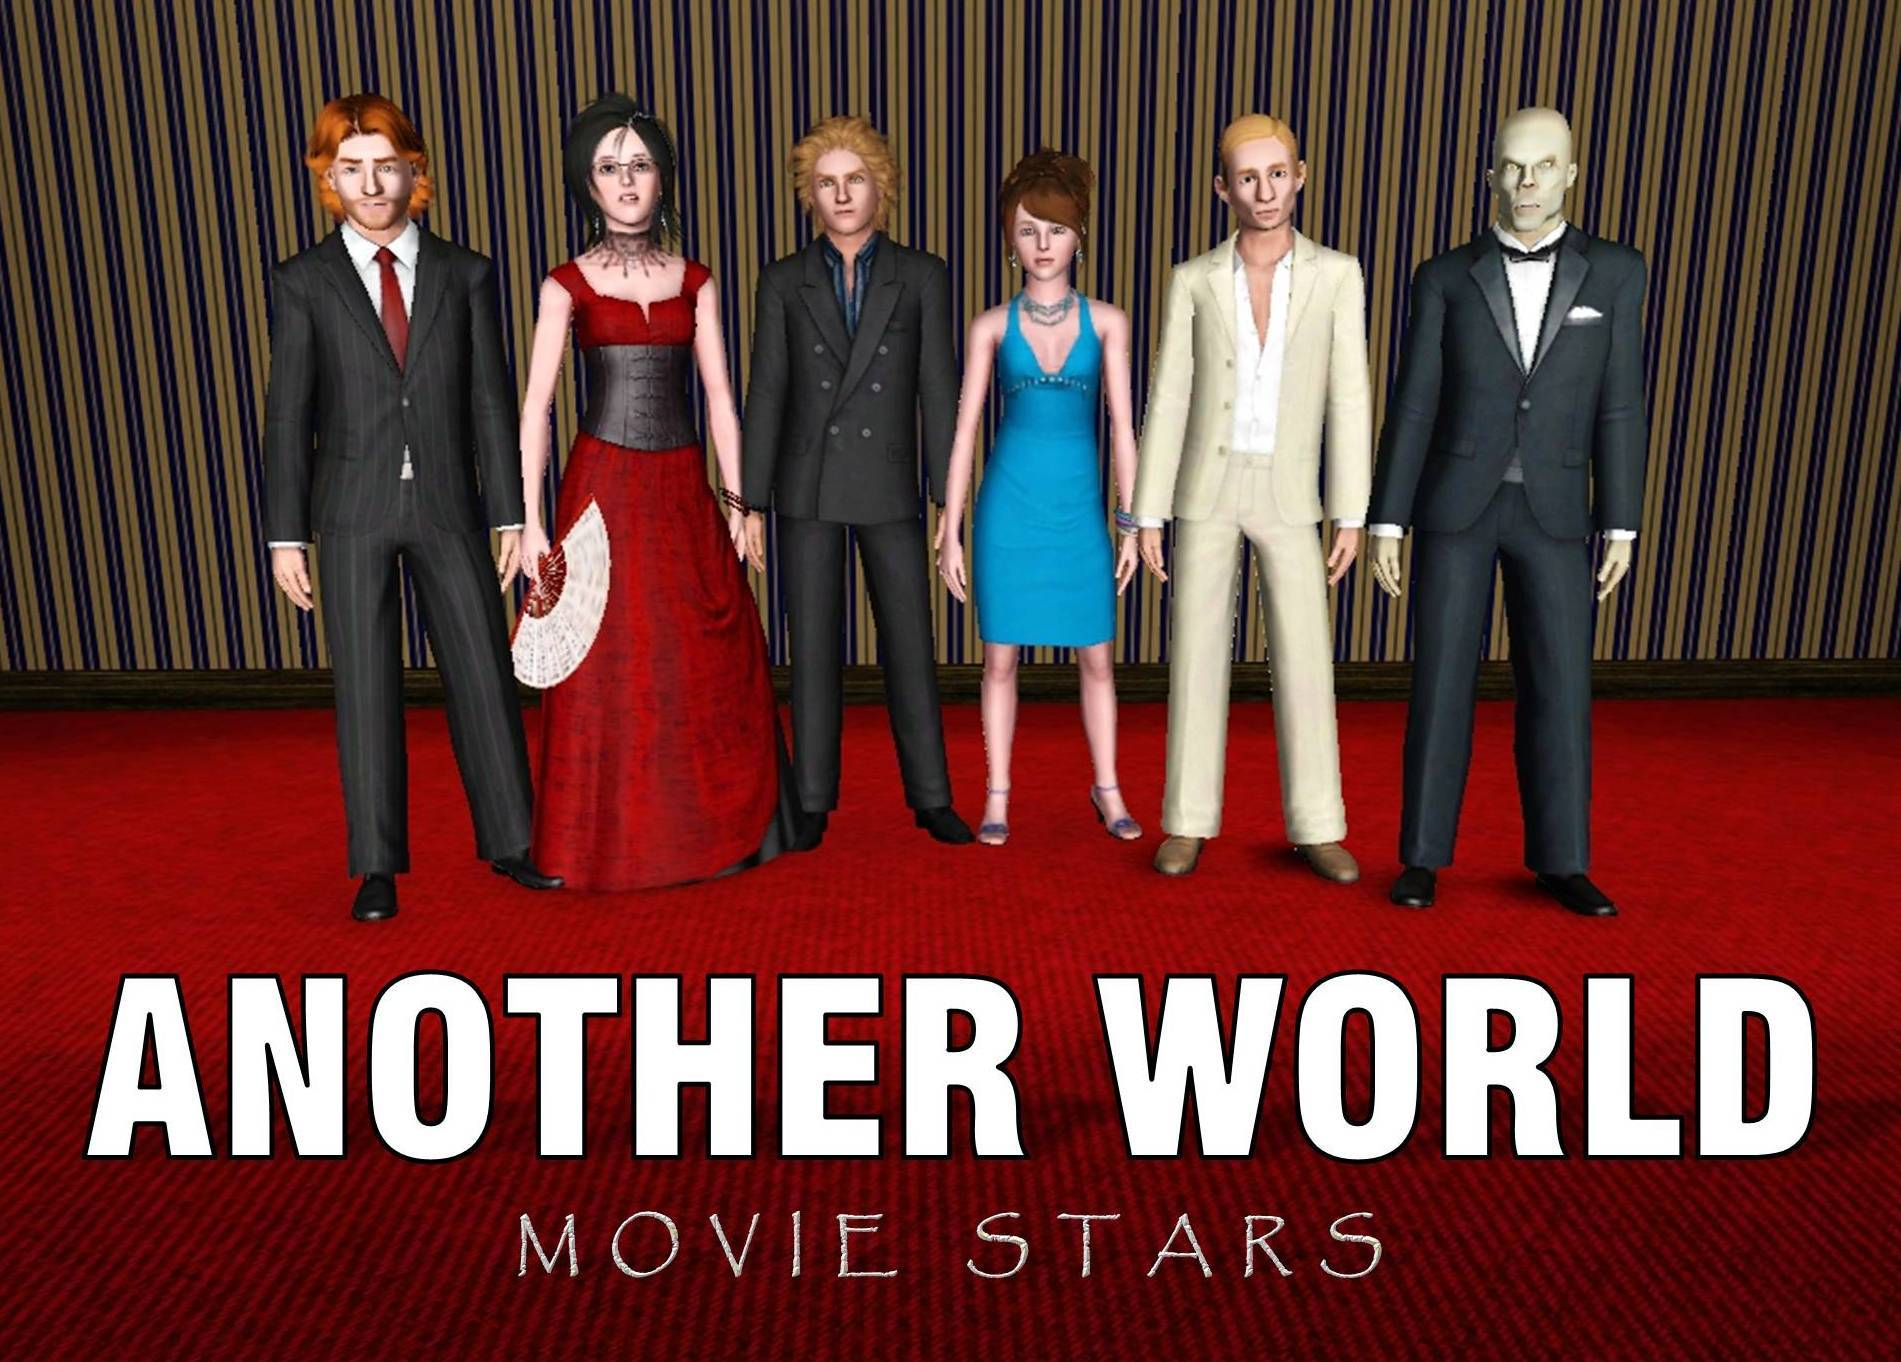 ANOTHER WORLD MOVIE STARS